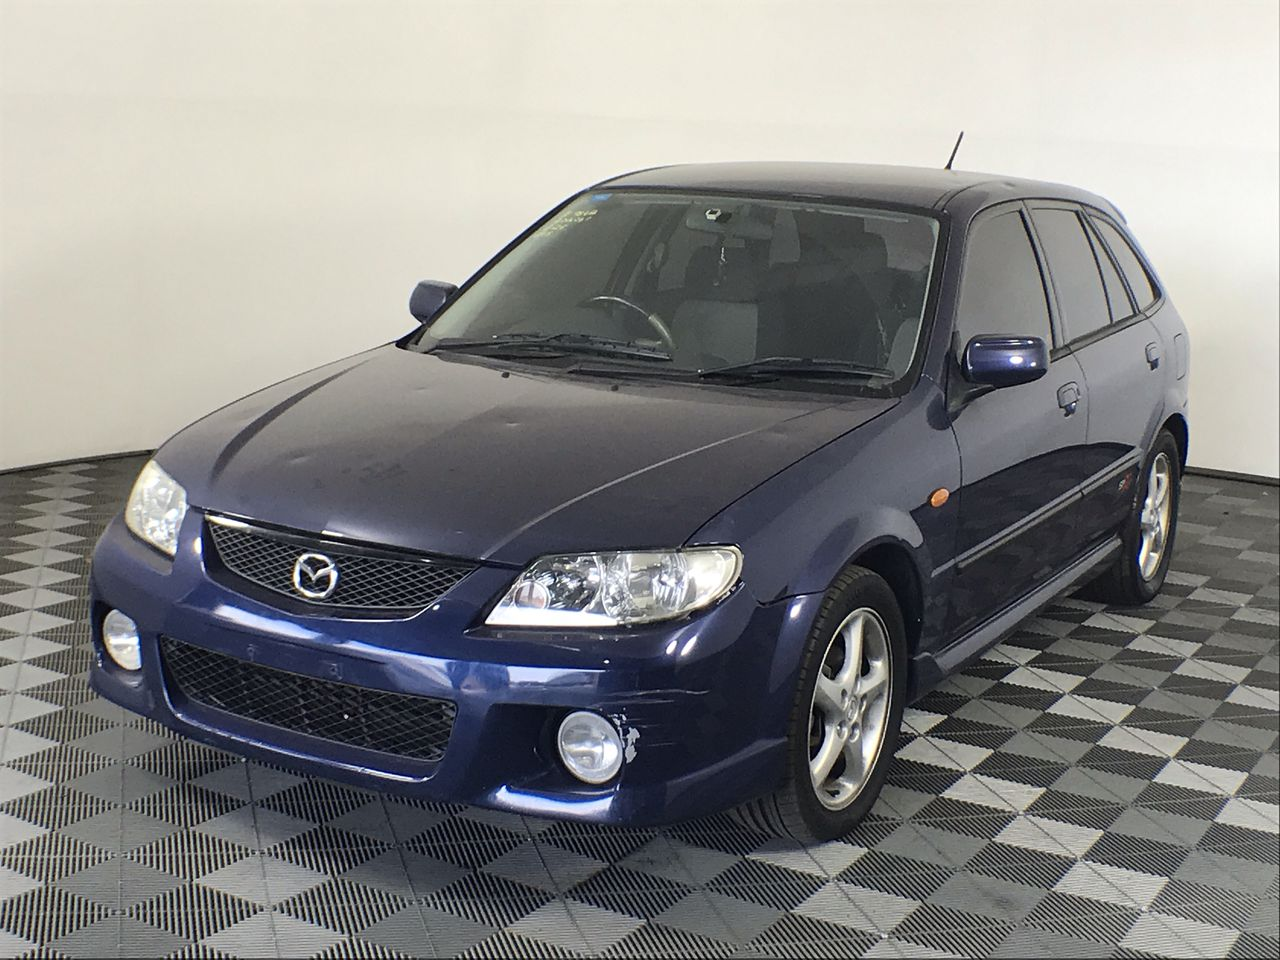 2001 Mazda 323 Astina SP20 BJ Manual Hatchback